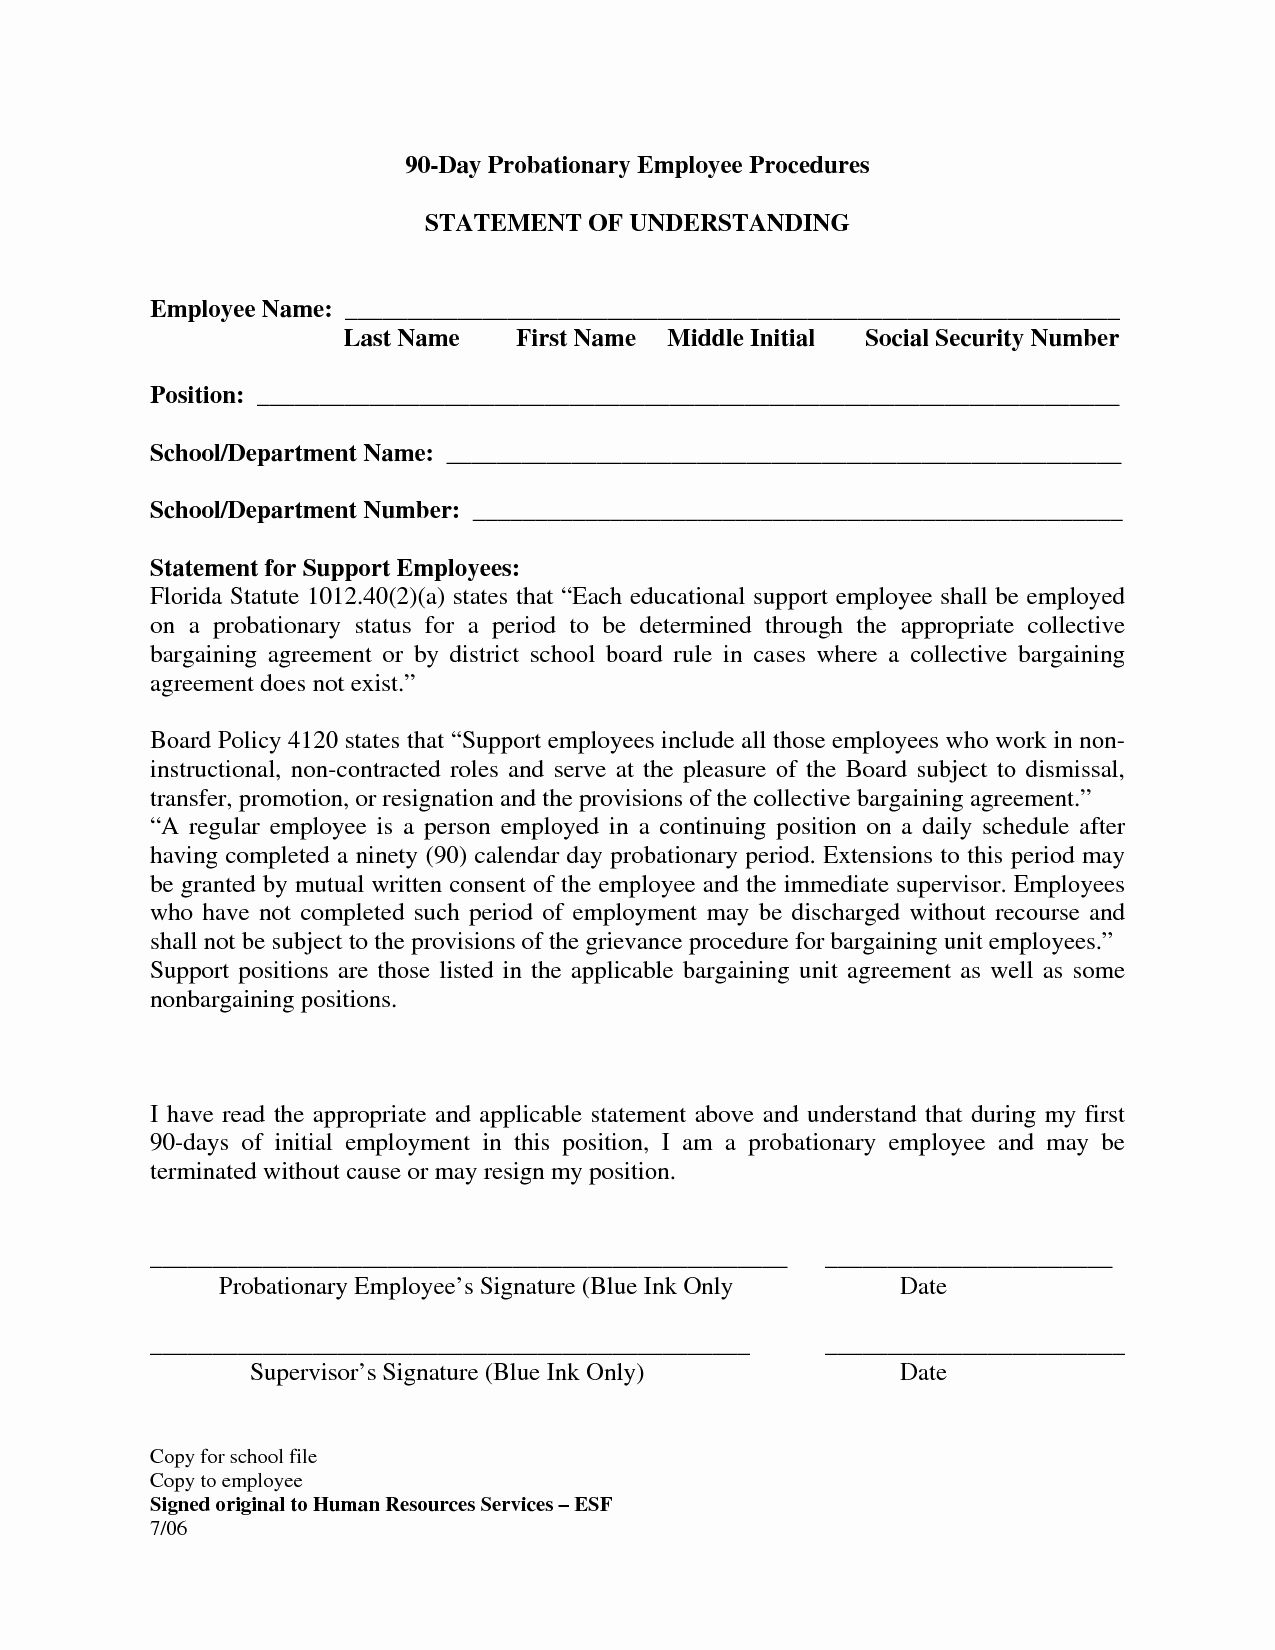 90 Day Probationary Period Form Awesome Best S Of 90 Day Probationary Form 90 Day Employee In 2020 Cover Letter For Resume Application Cover Letter Lettering 90 day probation period letter